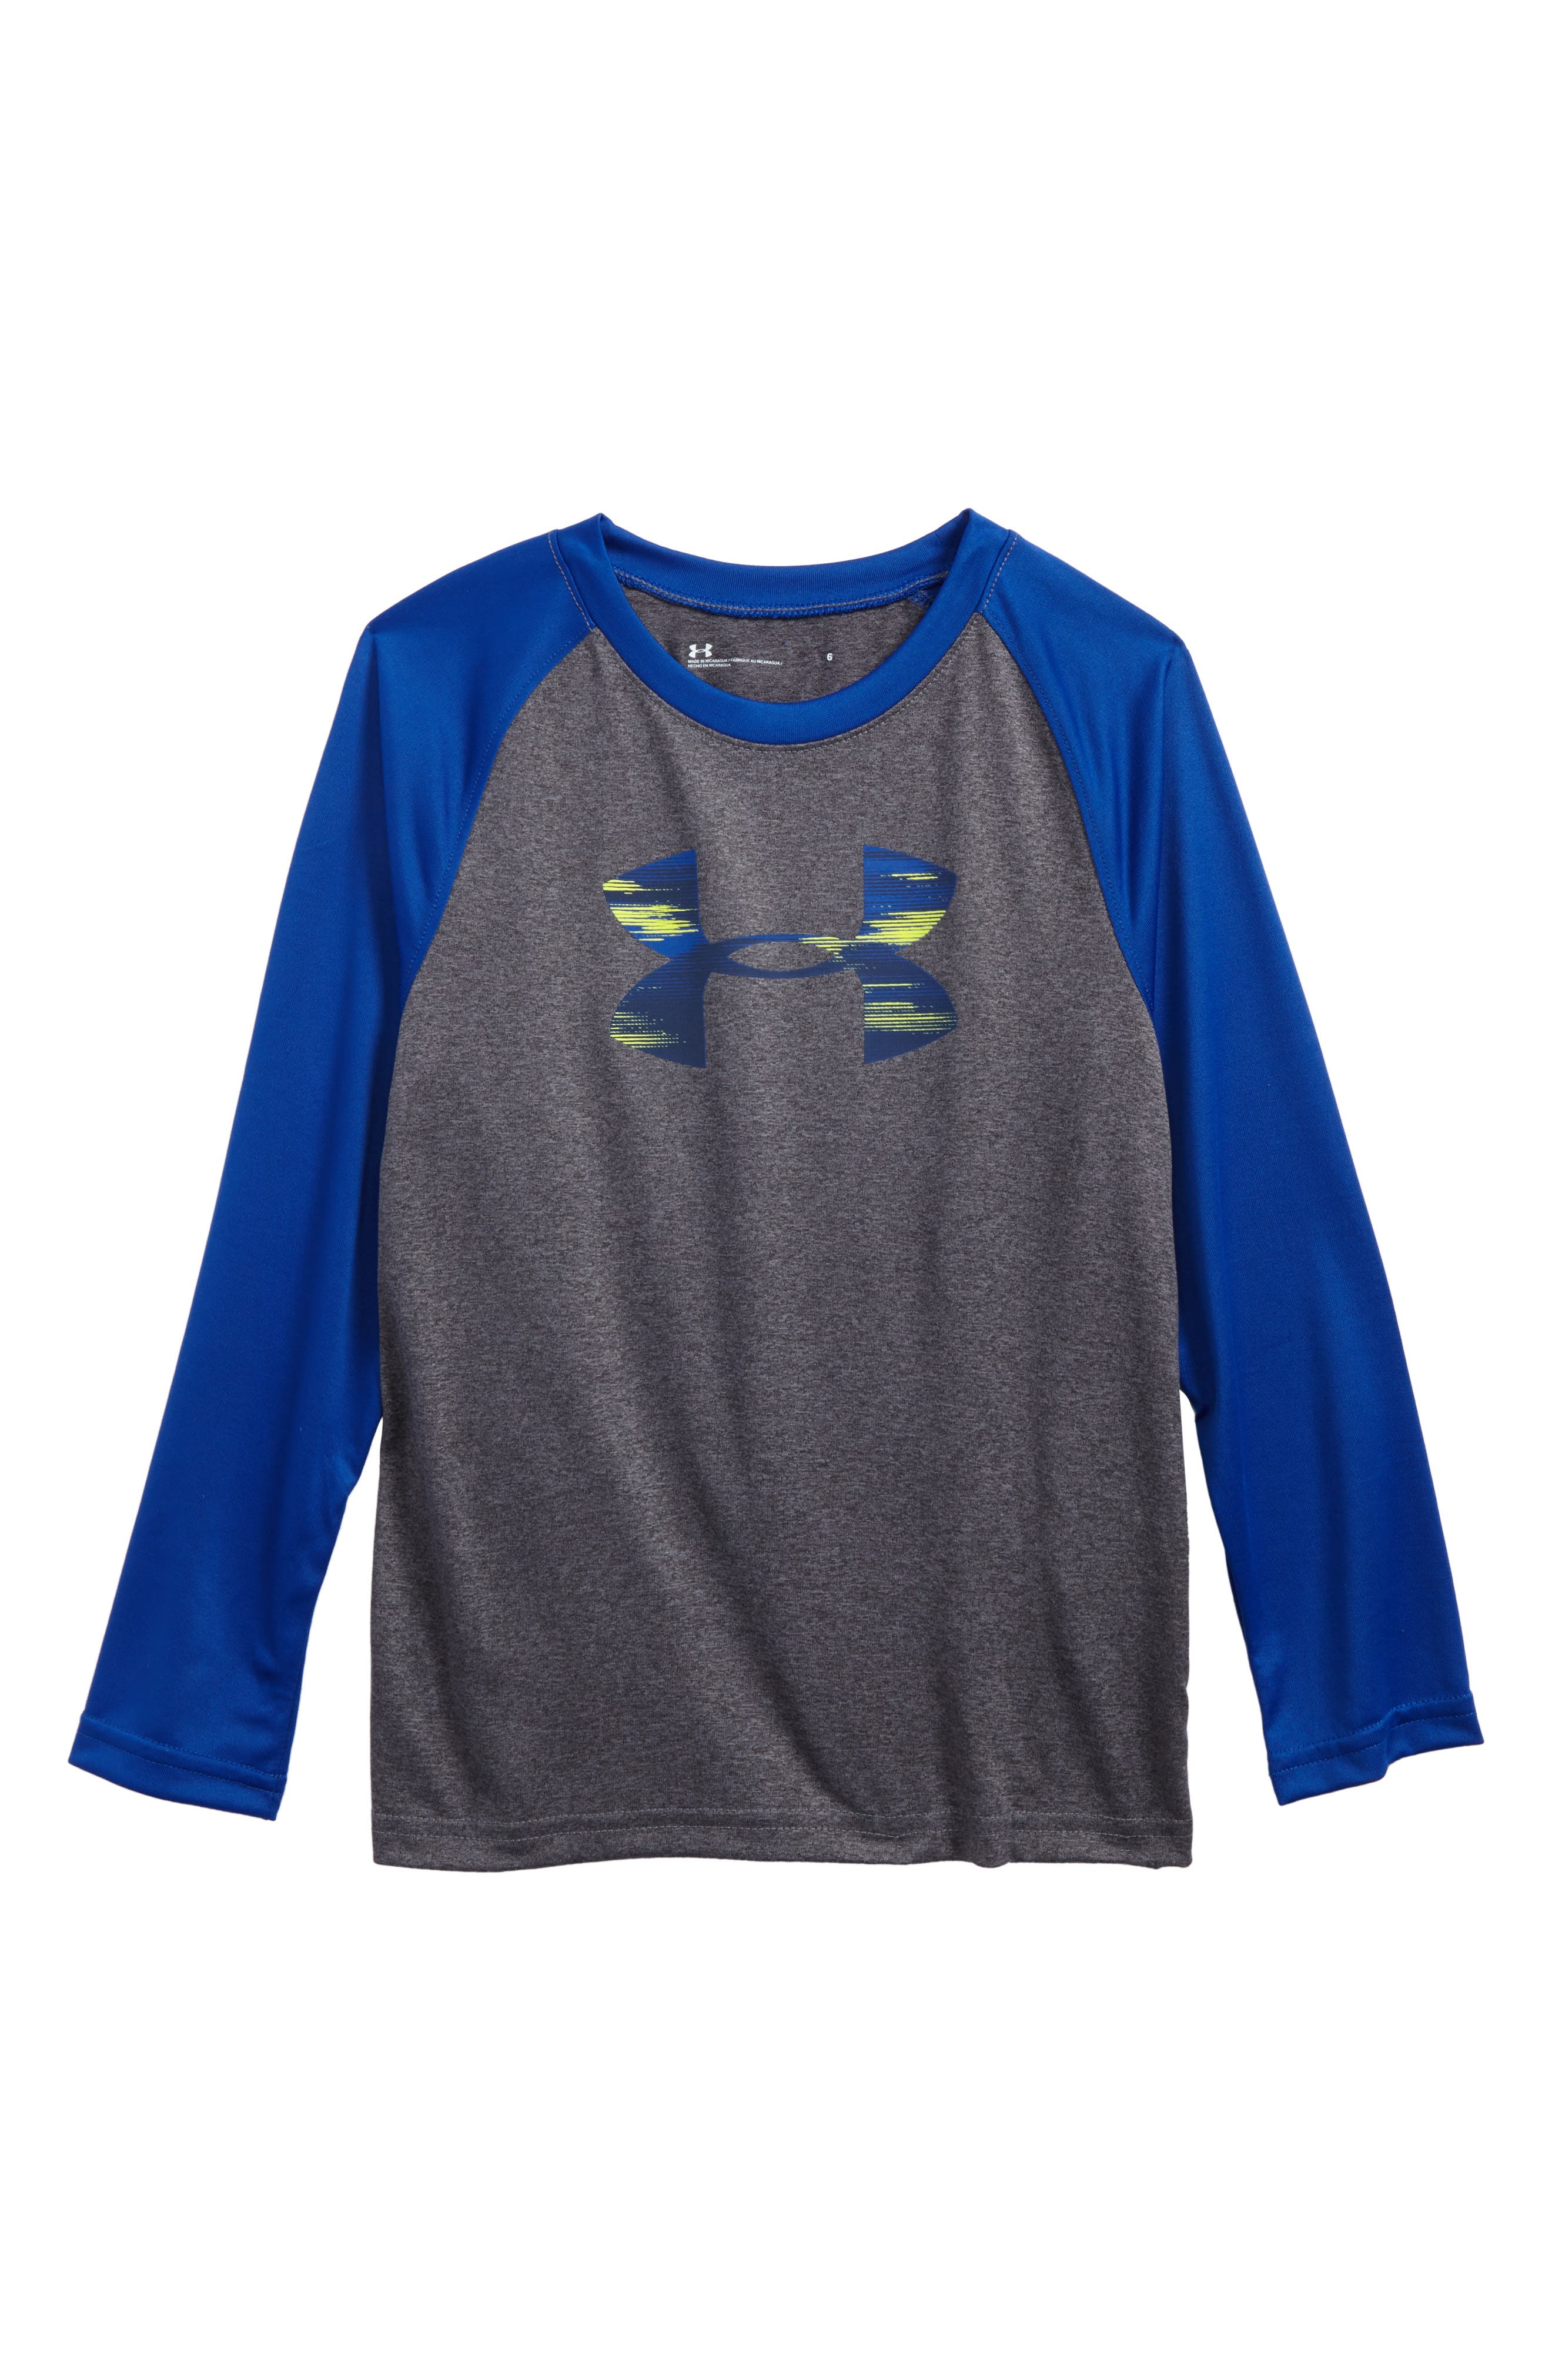 Alternate Image 1 Selected - Under Armour Accelerate Big Logo T-Shirt (Toddler Boys & Little Boys)